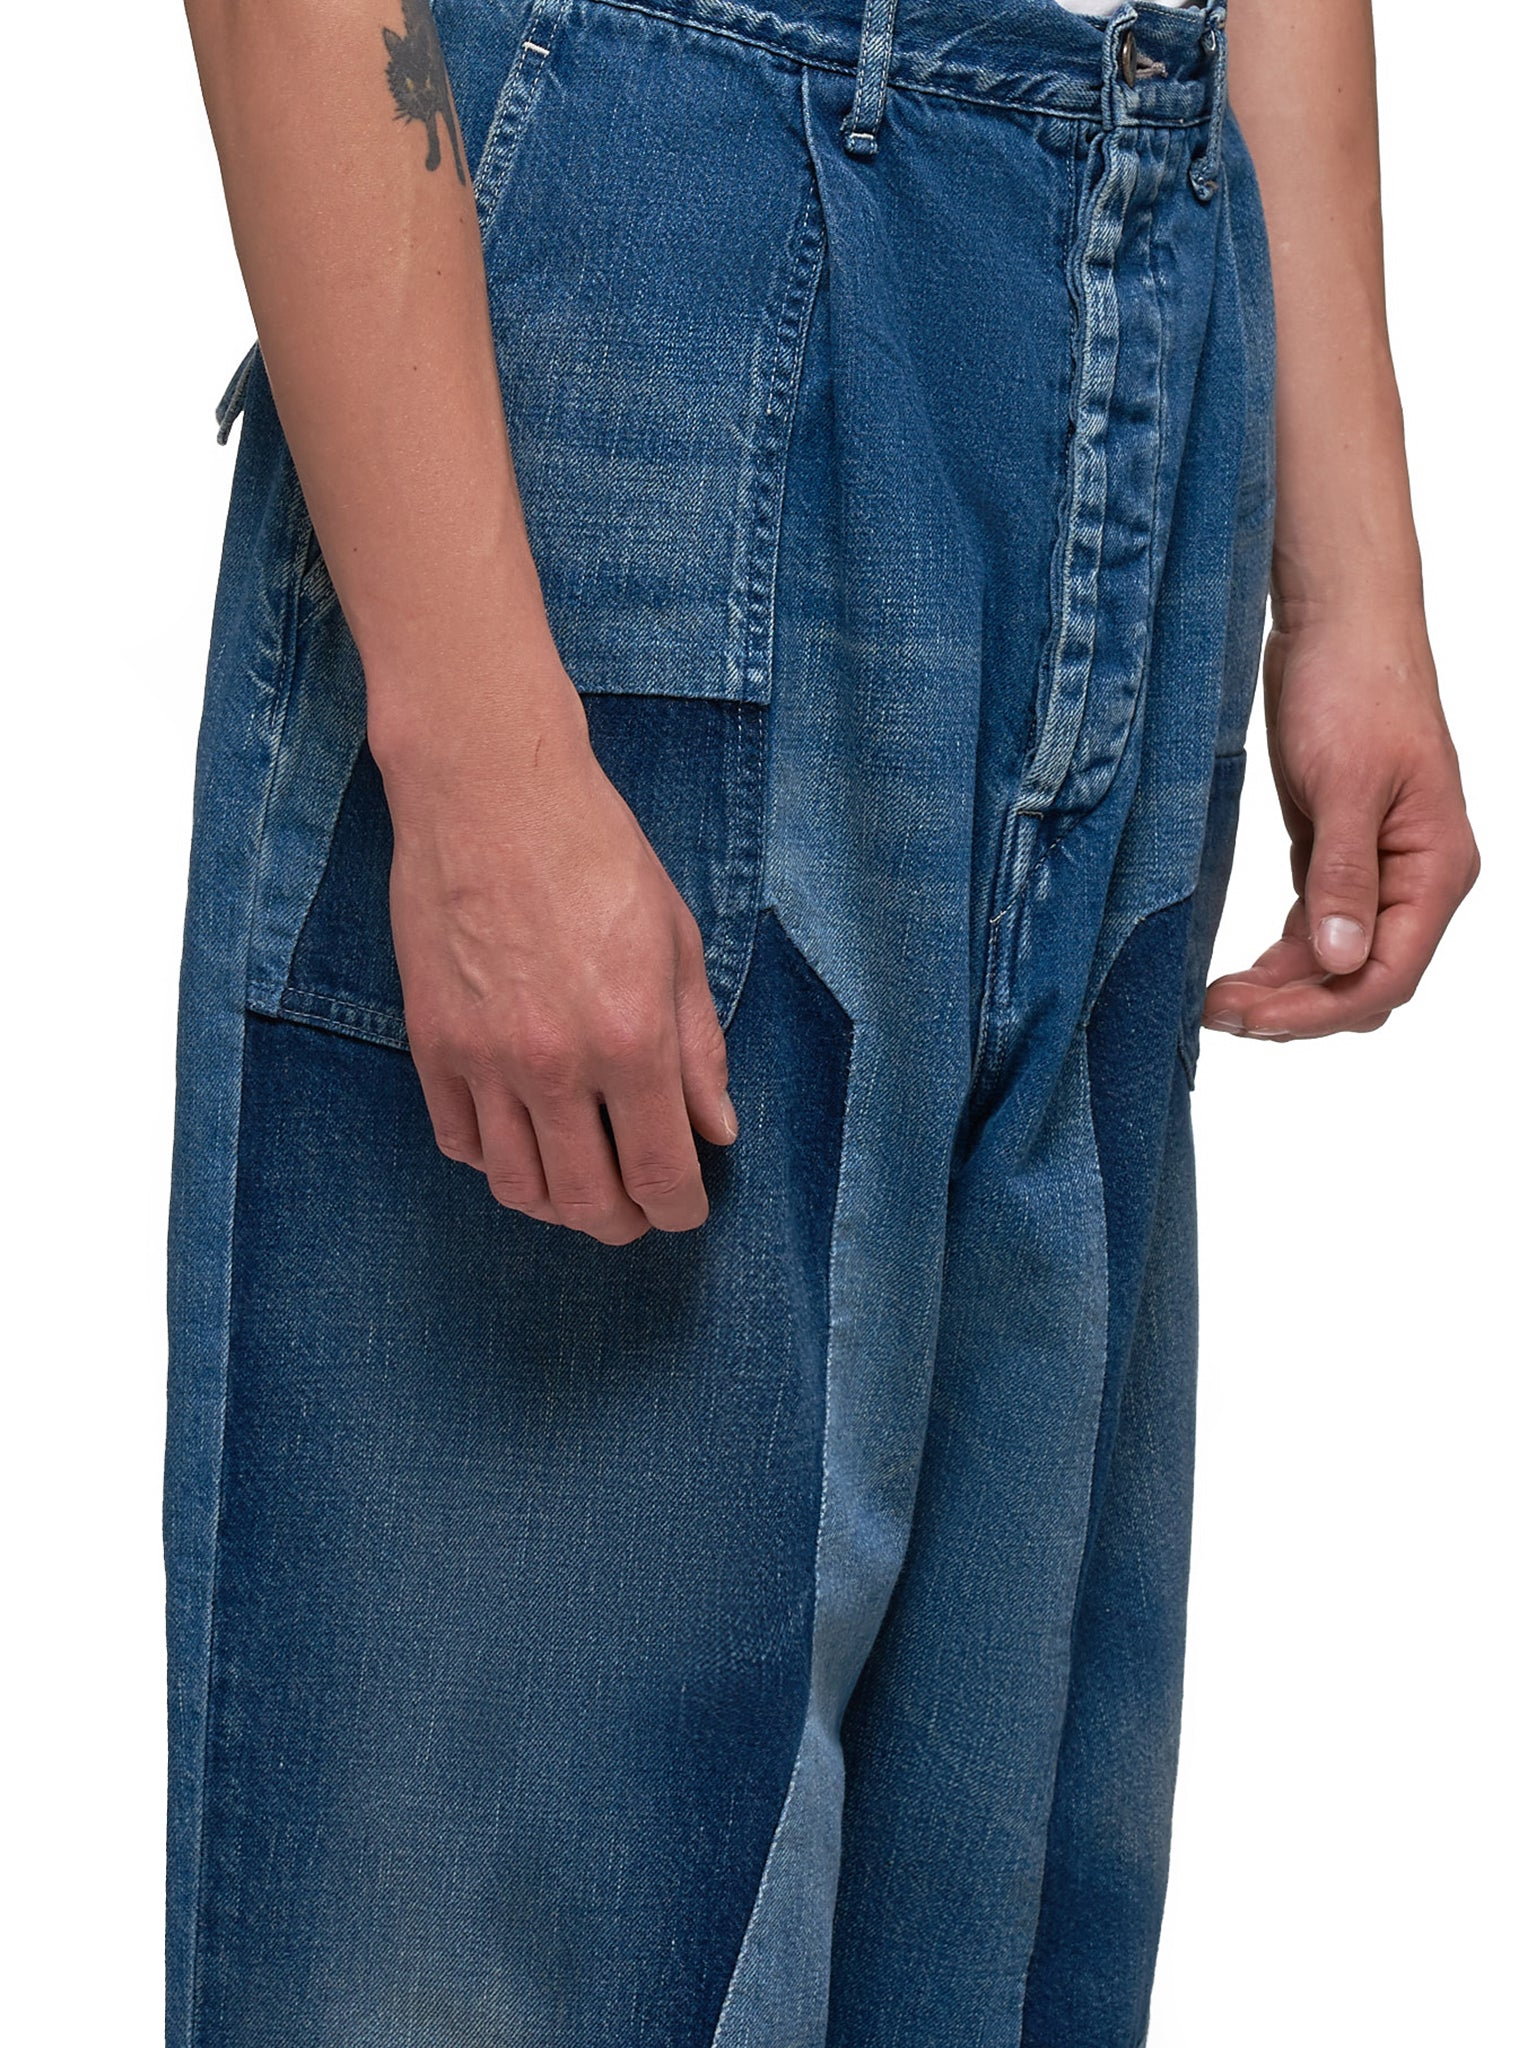 Denim Jeans (K1904LP102-DENIM-BLUE)